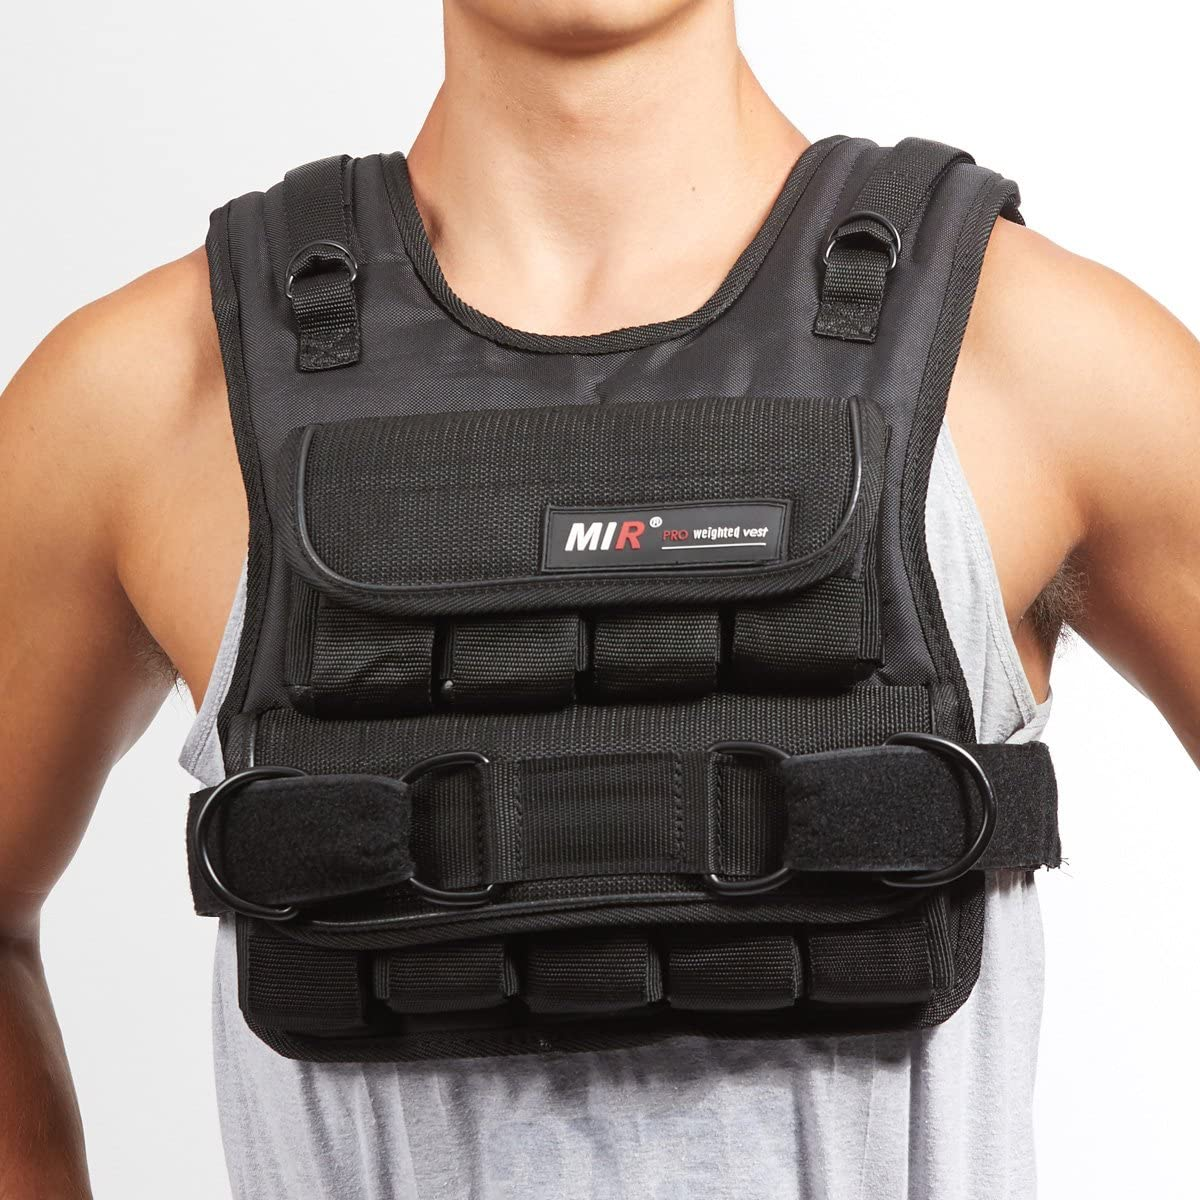 Mir Short Weighted Vest Speed Release Option Standard, 50lbs